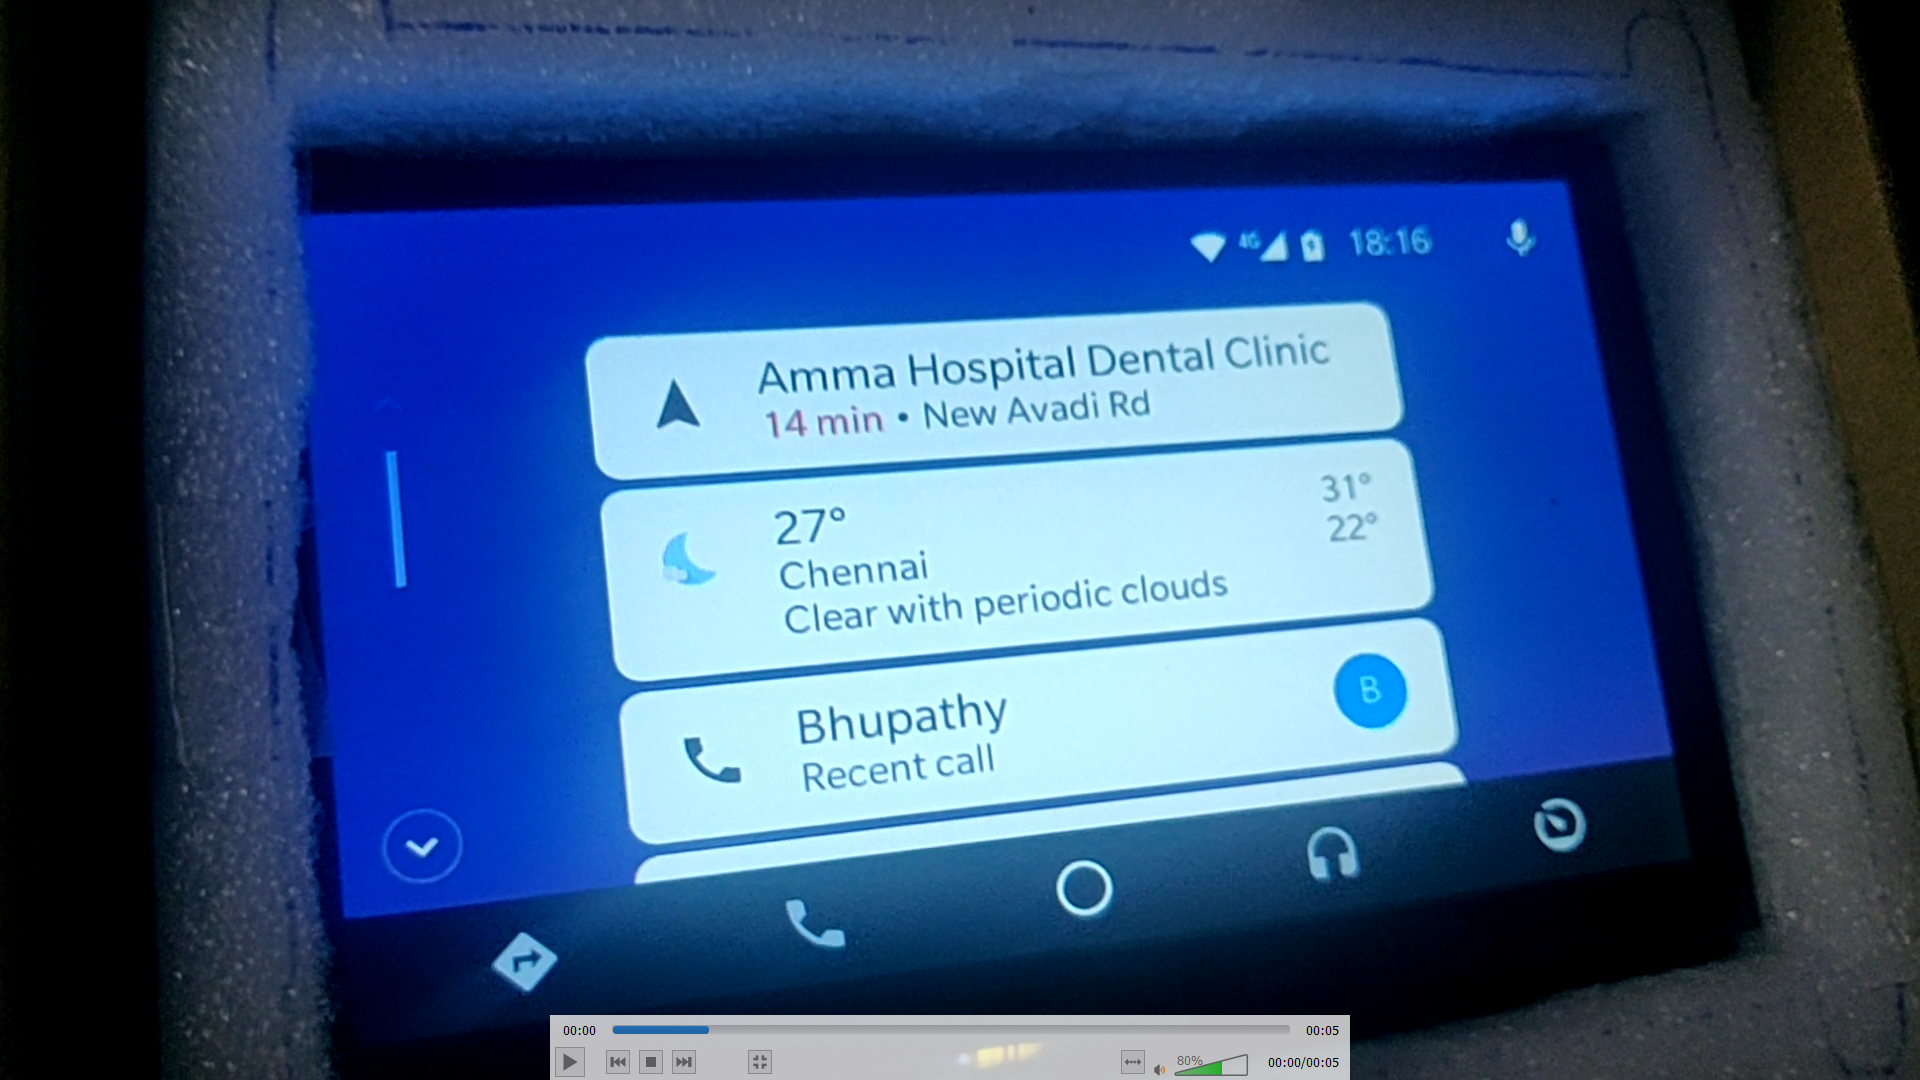 Android Auto closing automatically after some seconds -> fixed for